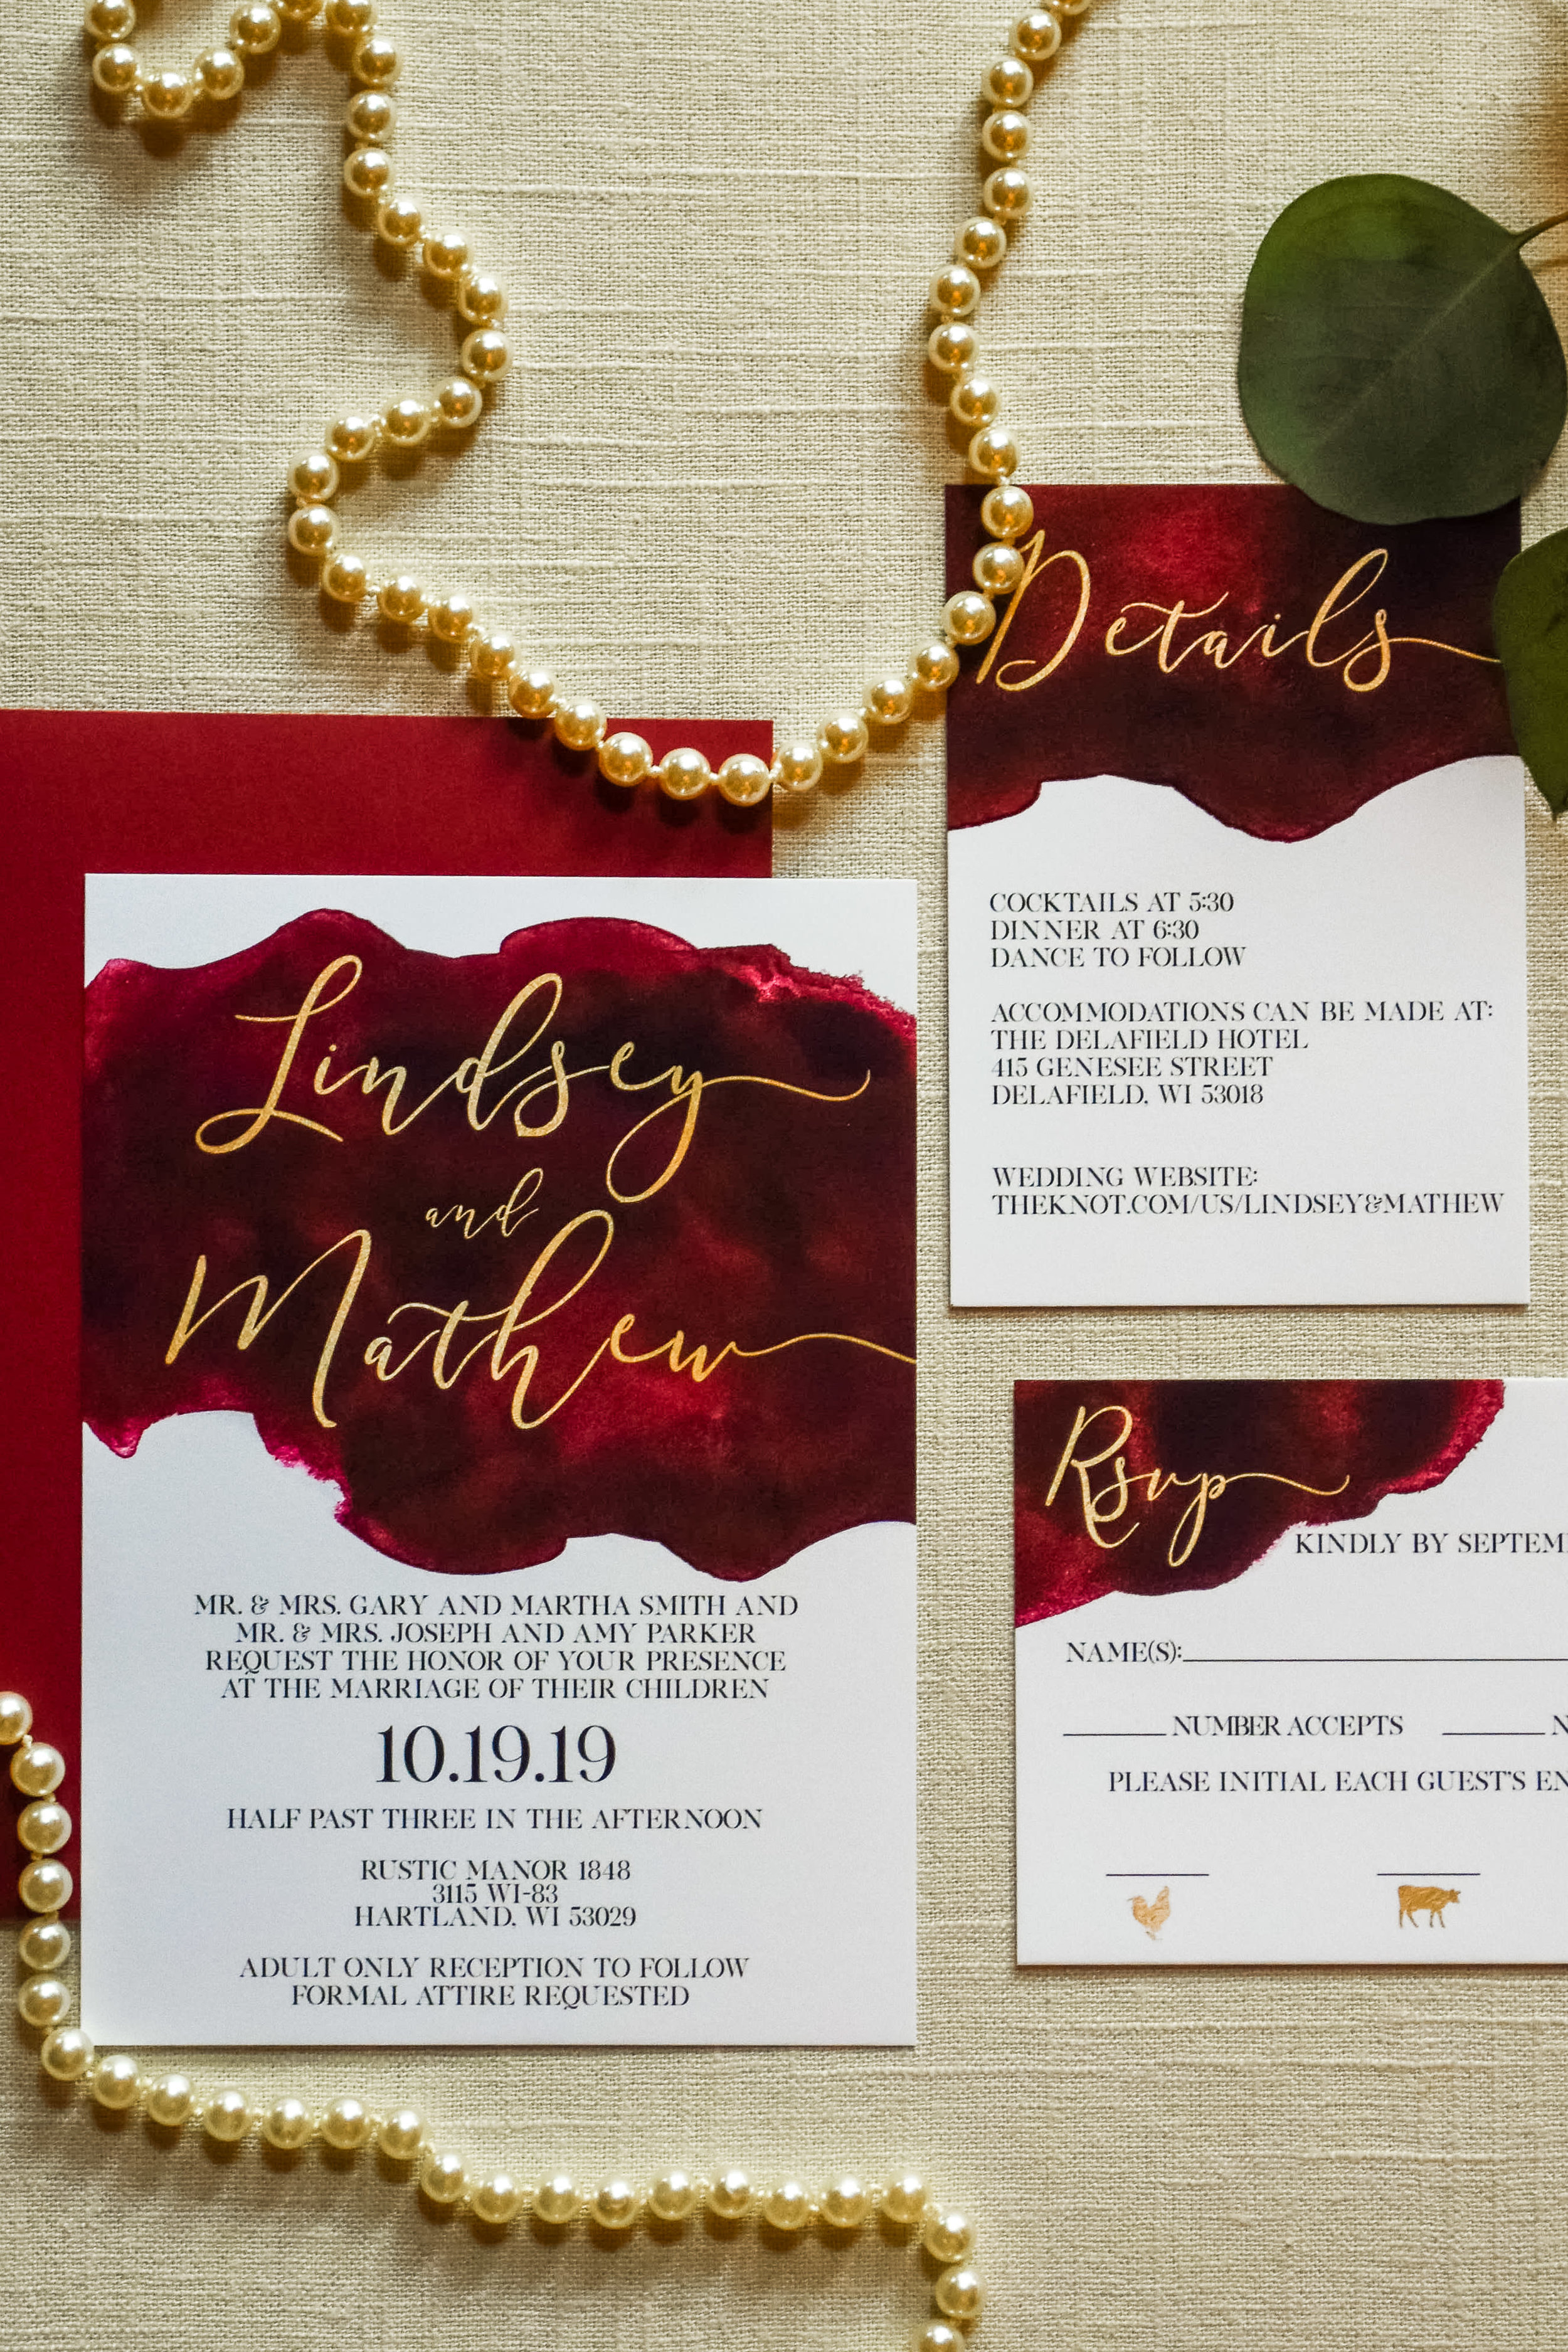 wedding invitations budget.jpg